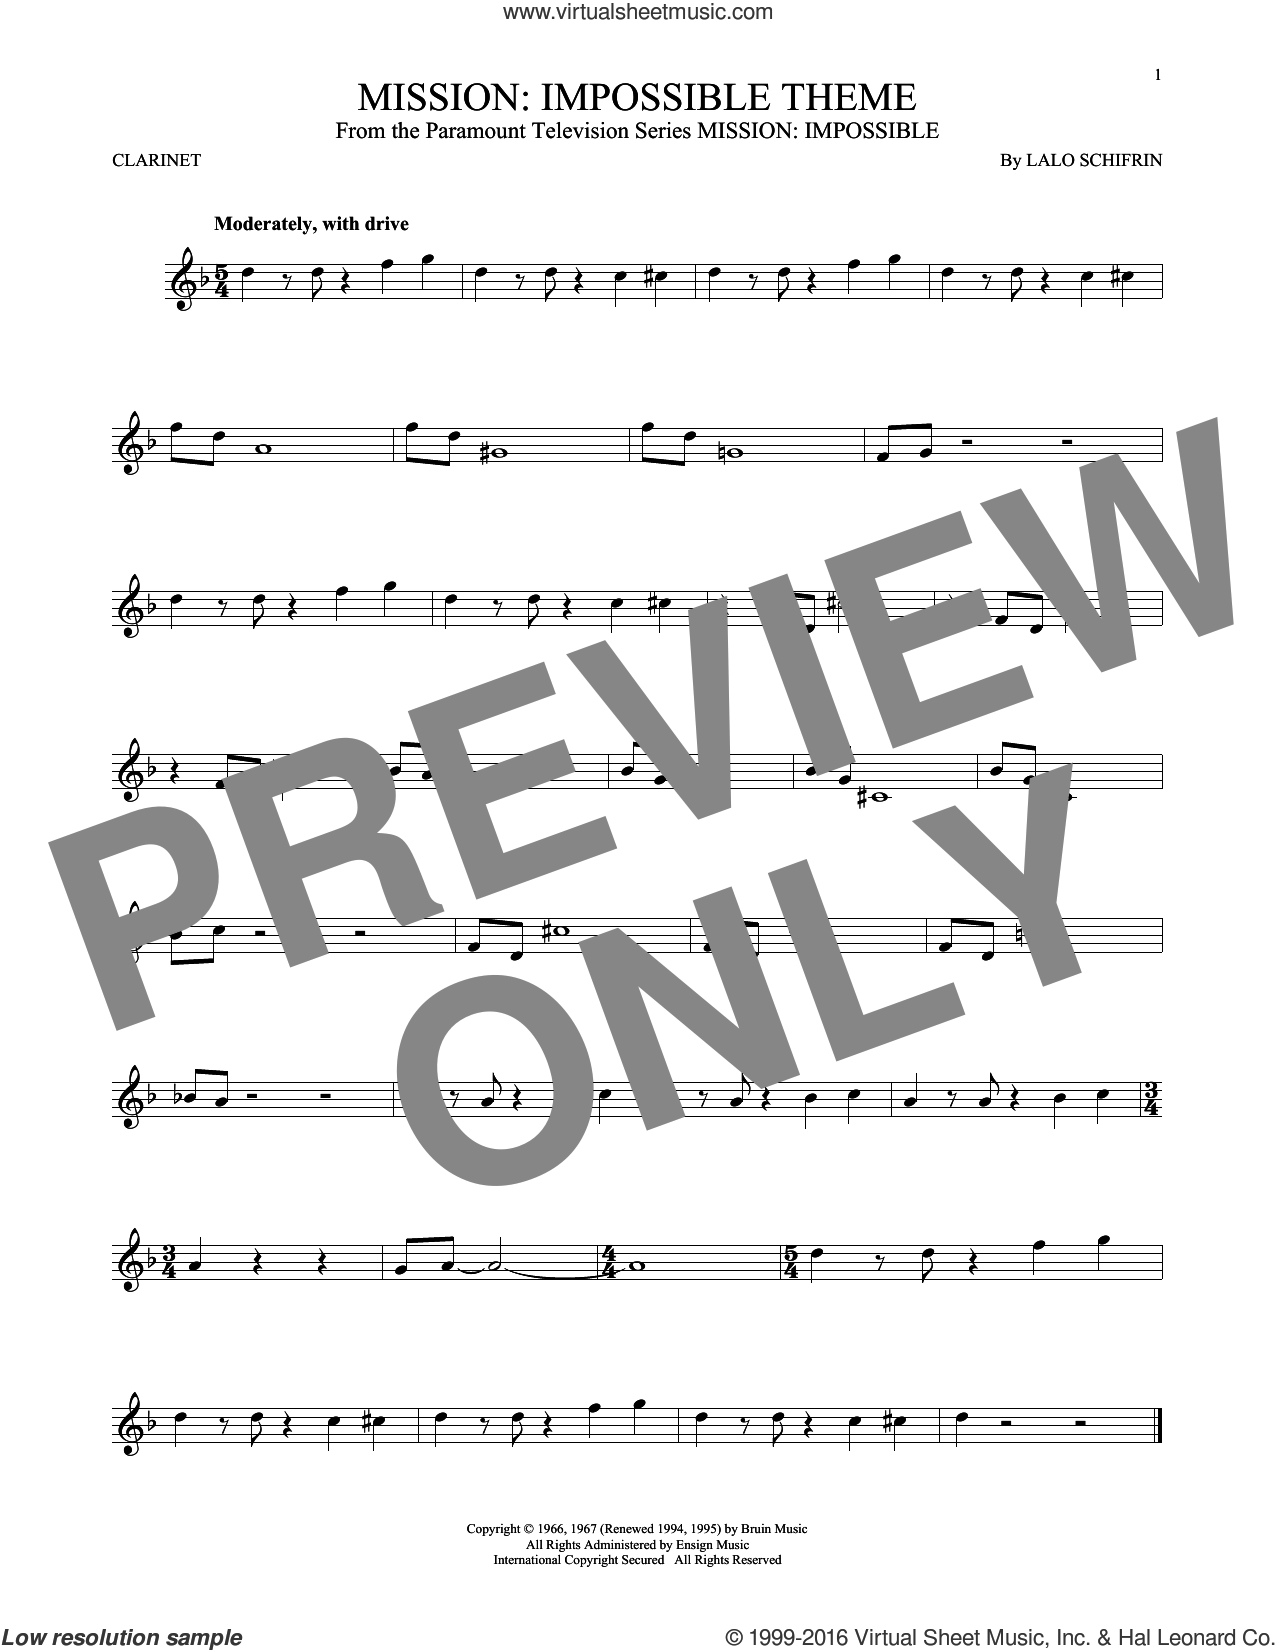 Mission: Impossible Theme sheet music for clarinet solo by Lalo Schifrin. Score Image Preview.